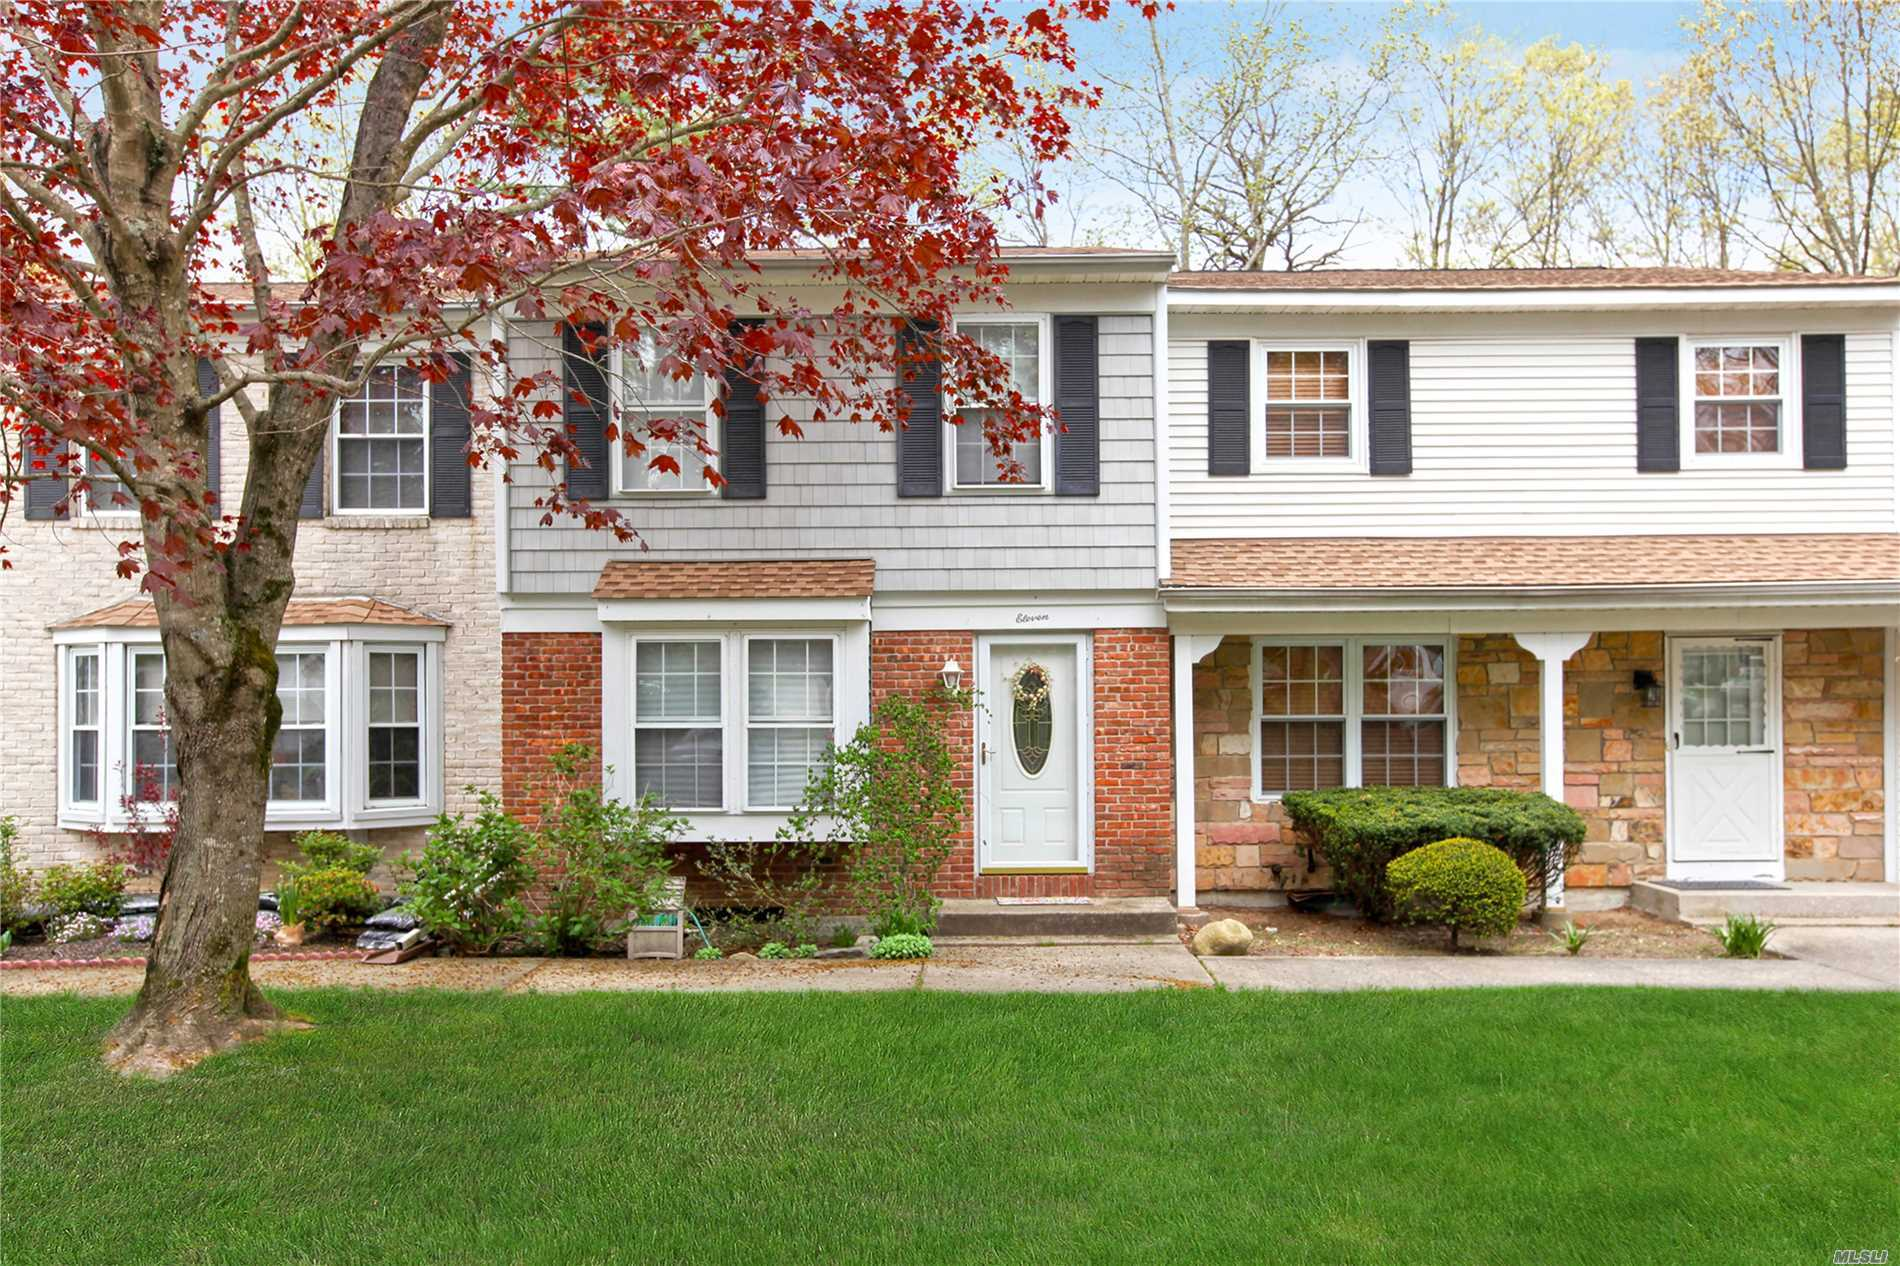 Beautiful 2 bedroom townhouse condo in Colonial Woods. Features full basement, formal living room, dining area, kitchen, two large bedrooms and one and a half baths and private yard. Amenities include community pool, tennis, assigned parking space, and clubhouse.